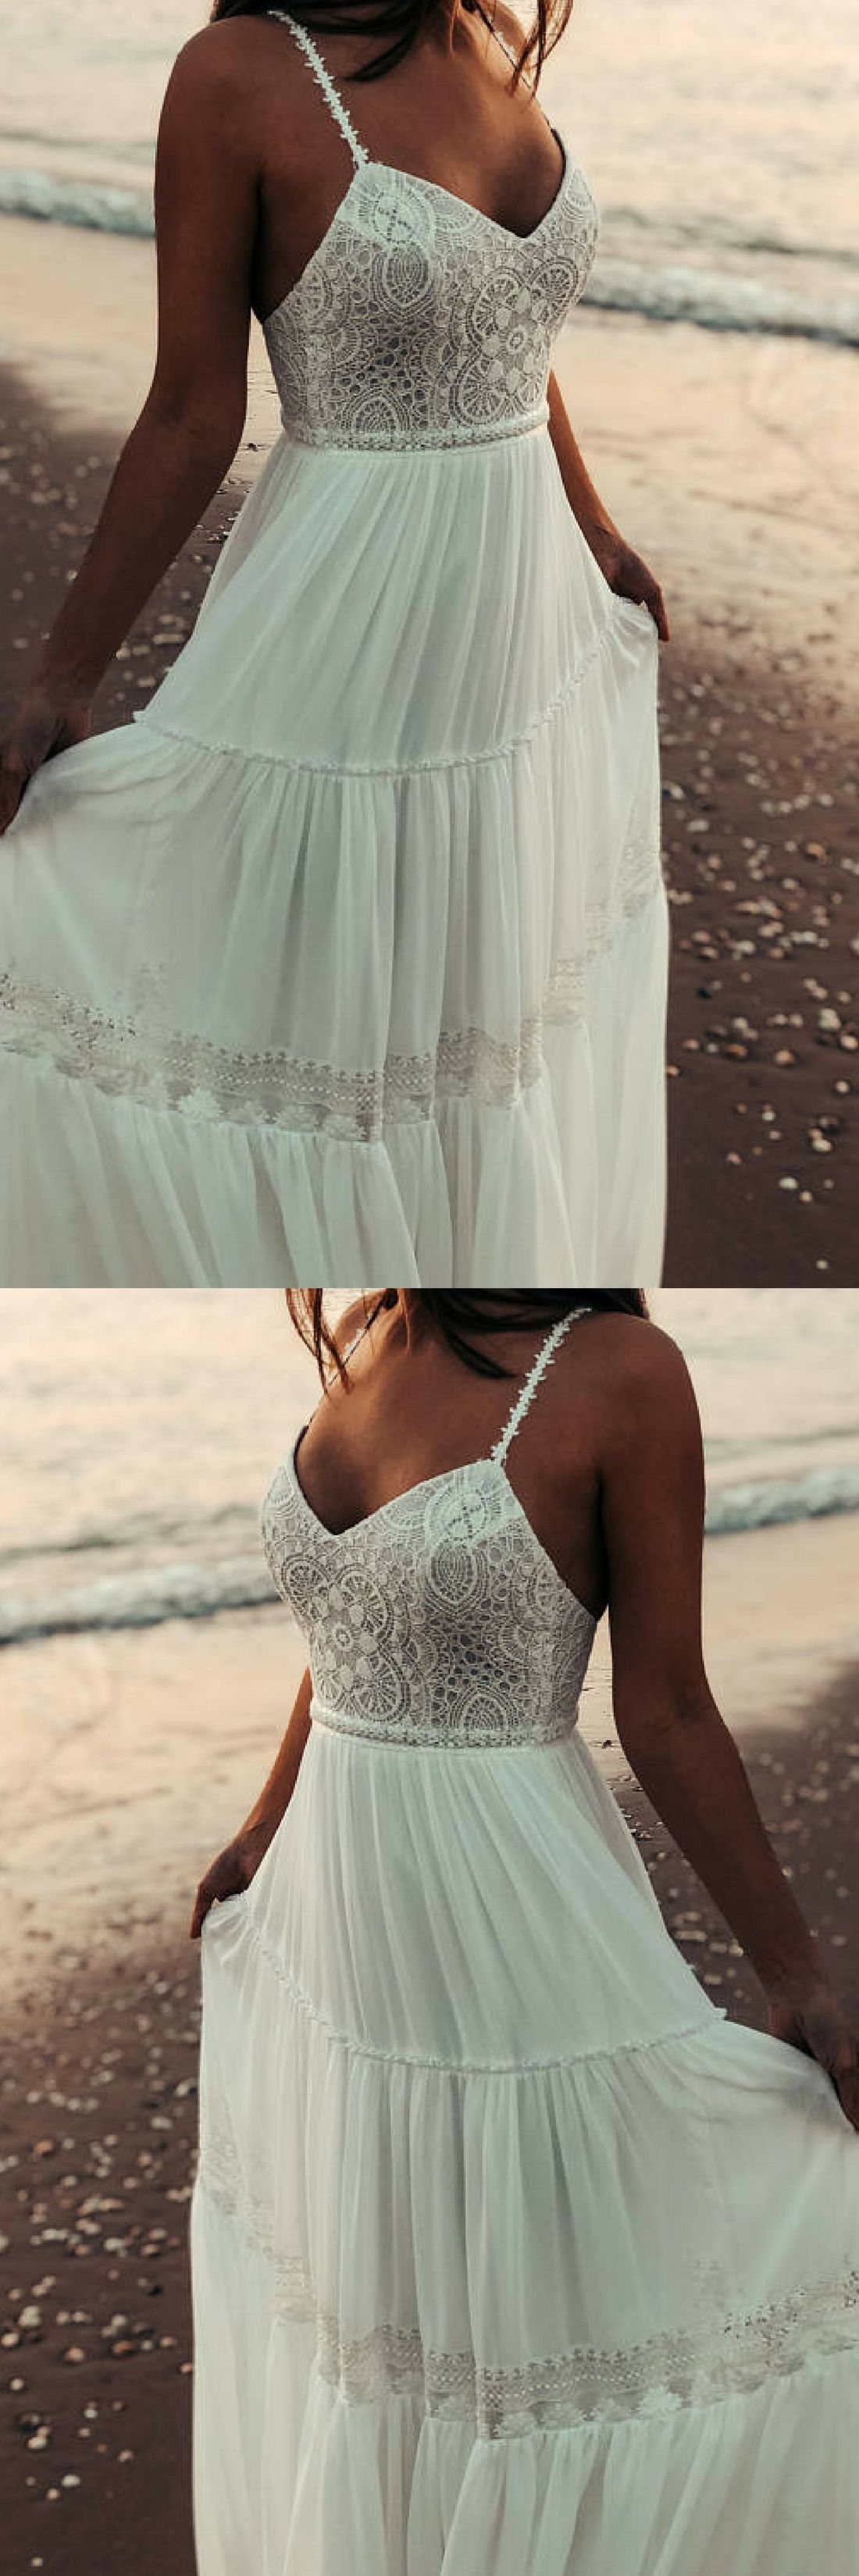 The fairy wedding gown is perfect for the laid back boho chic bride